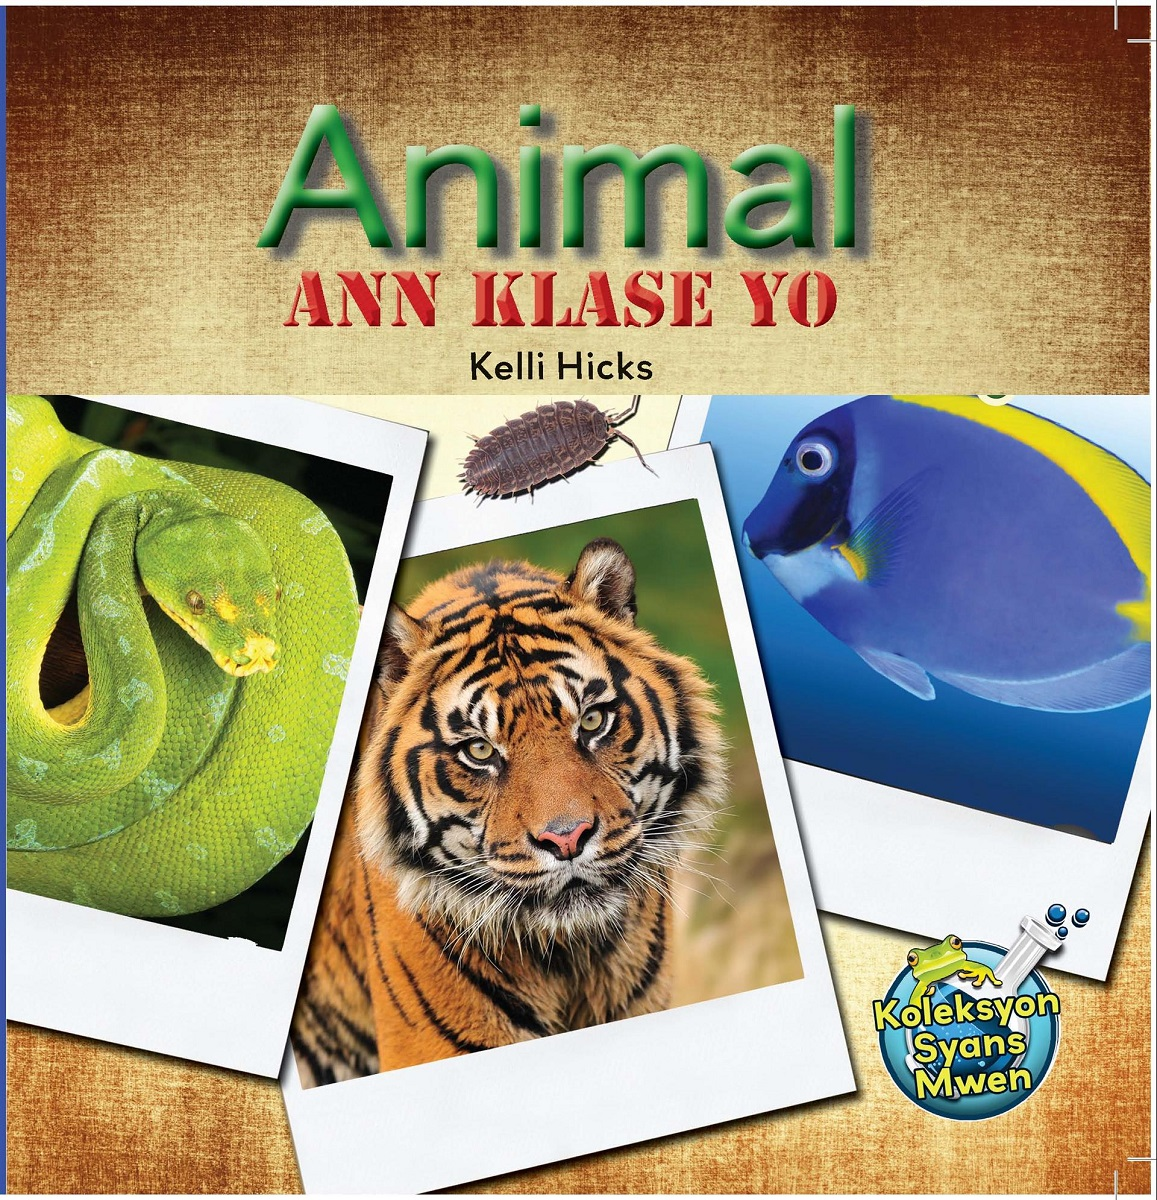 Animal Ann Klase Yo